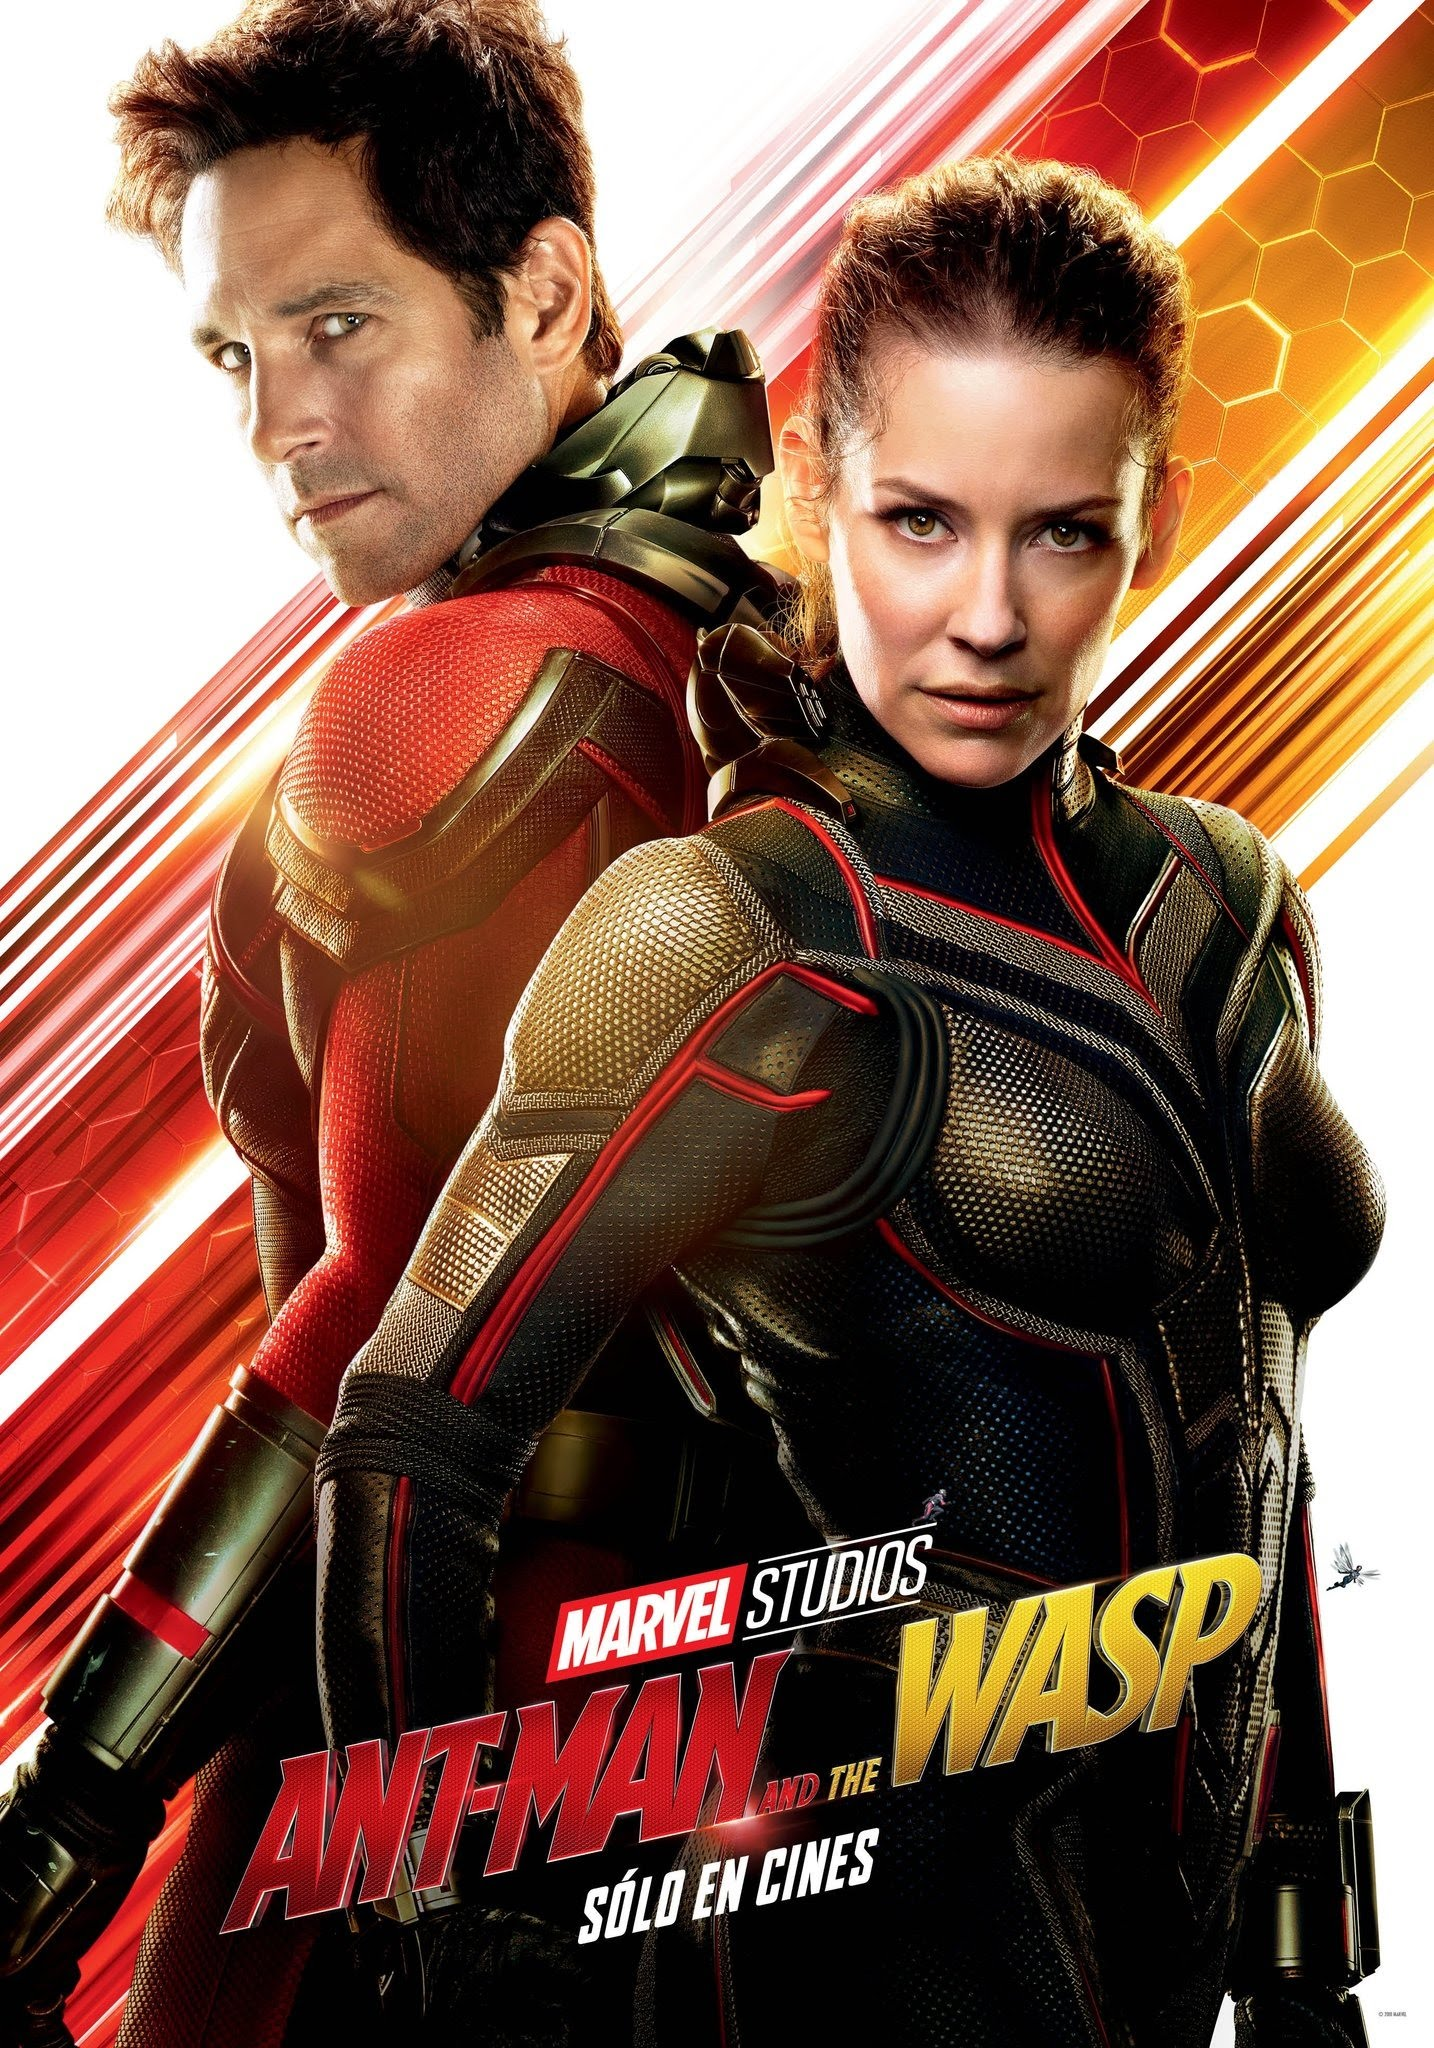 ant man and the wasp full movie online free putlockers